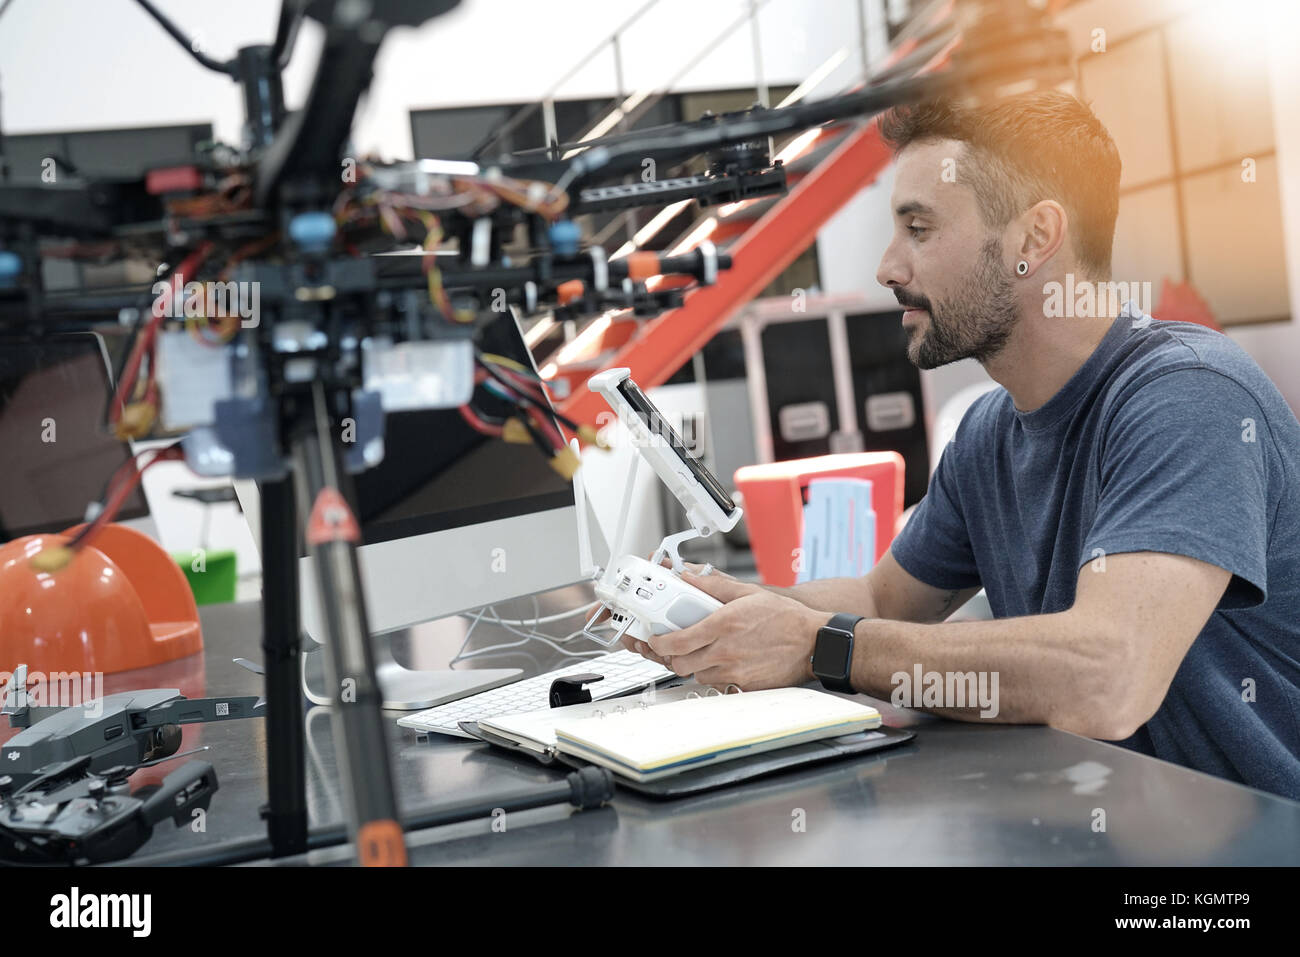 Engineer working on drone in lab - Stock Image